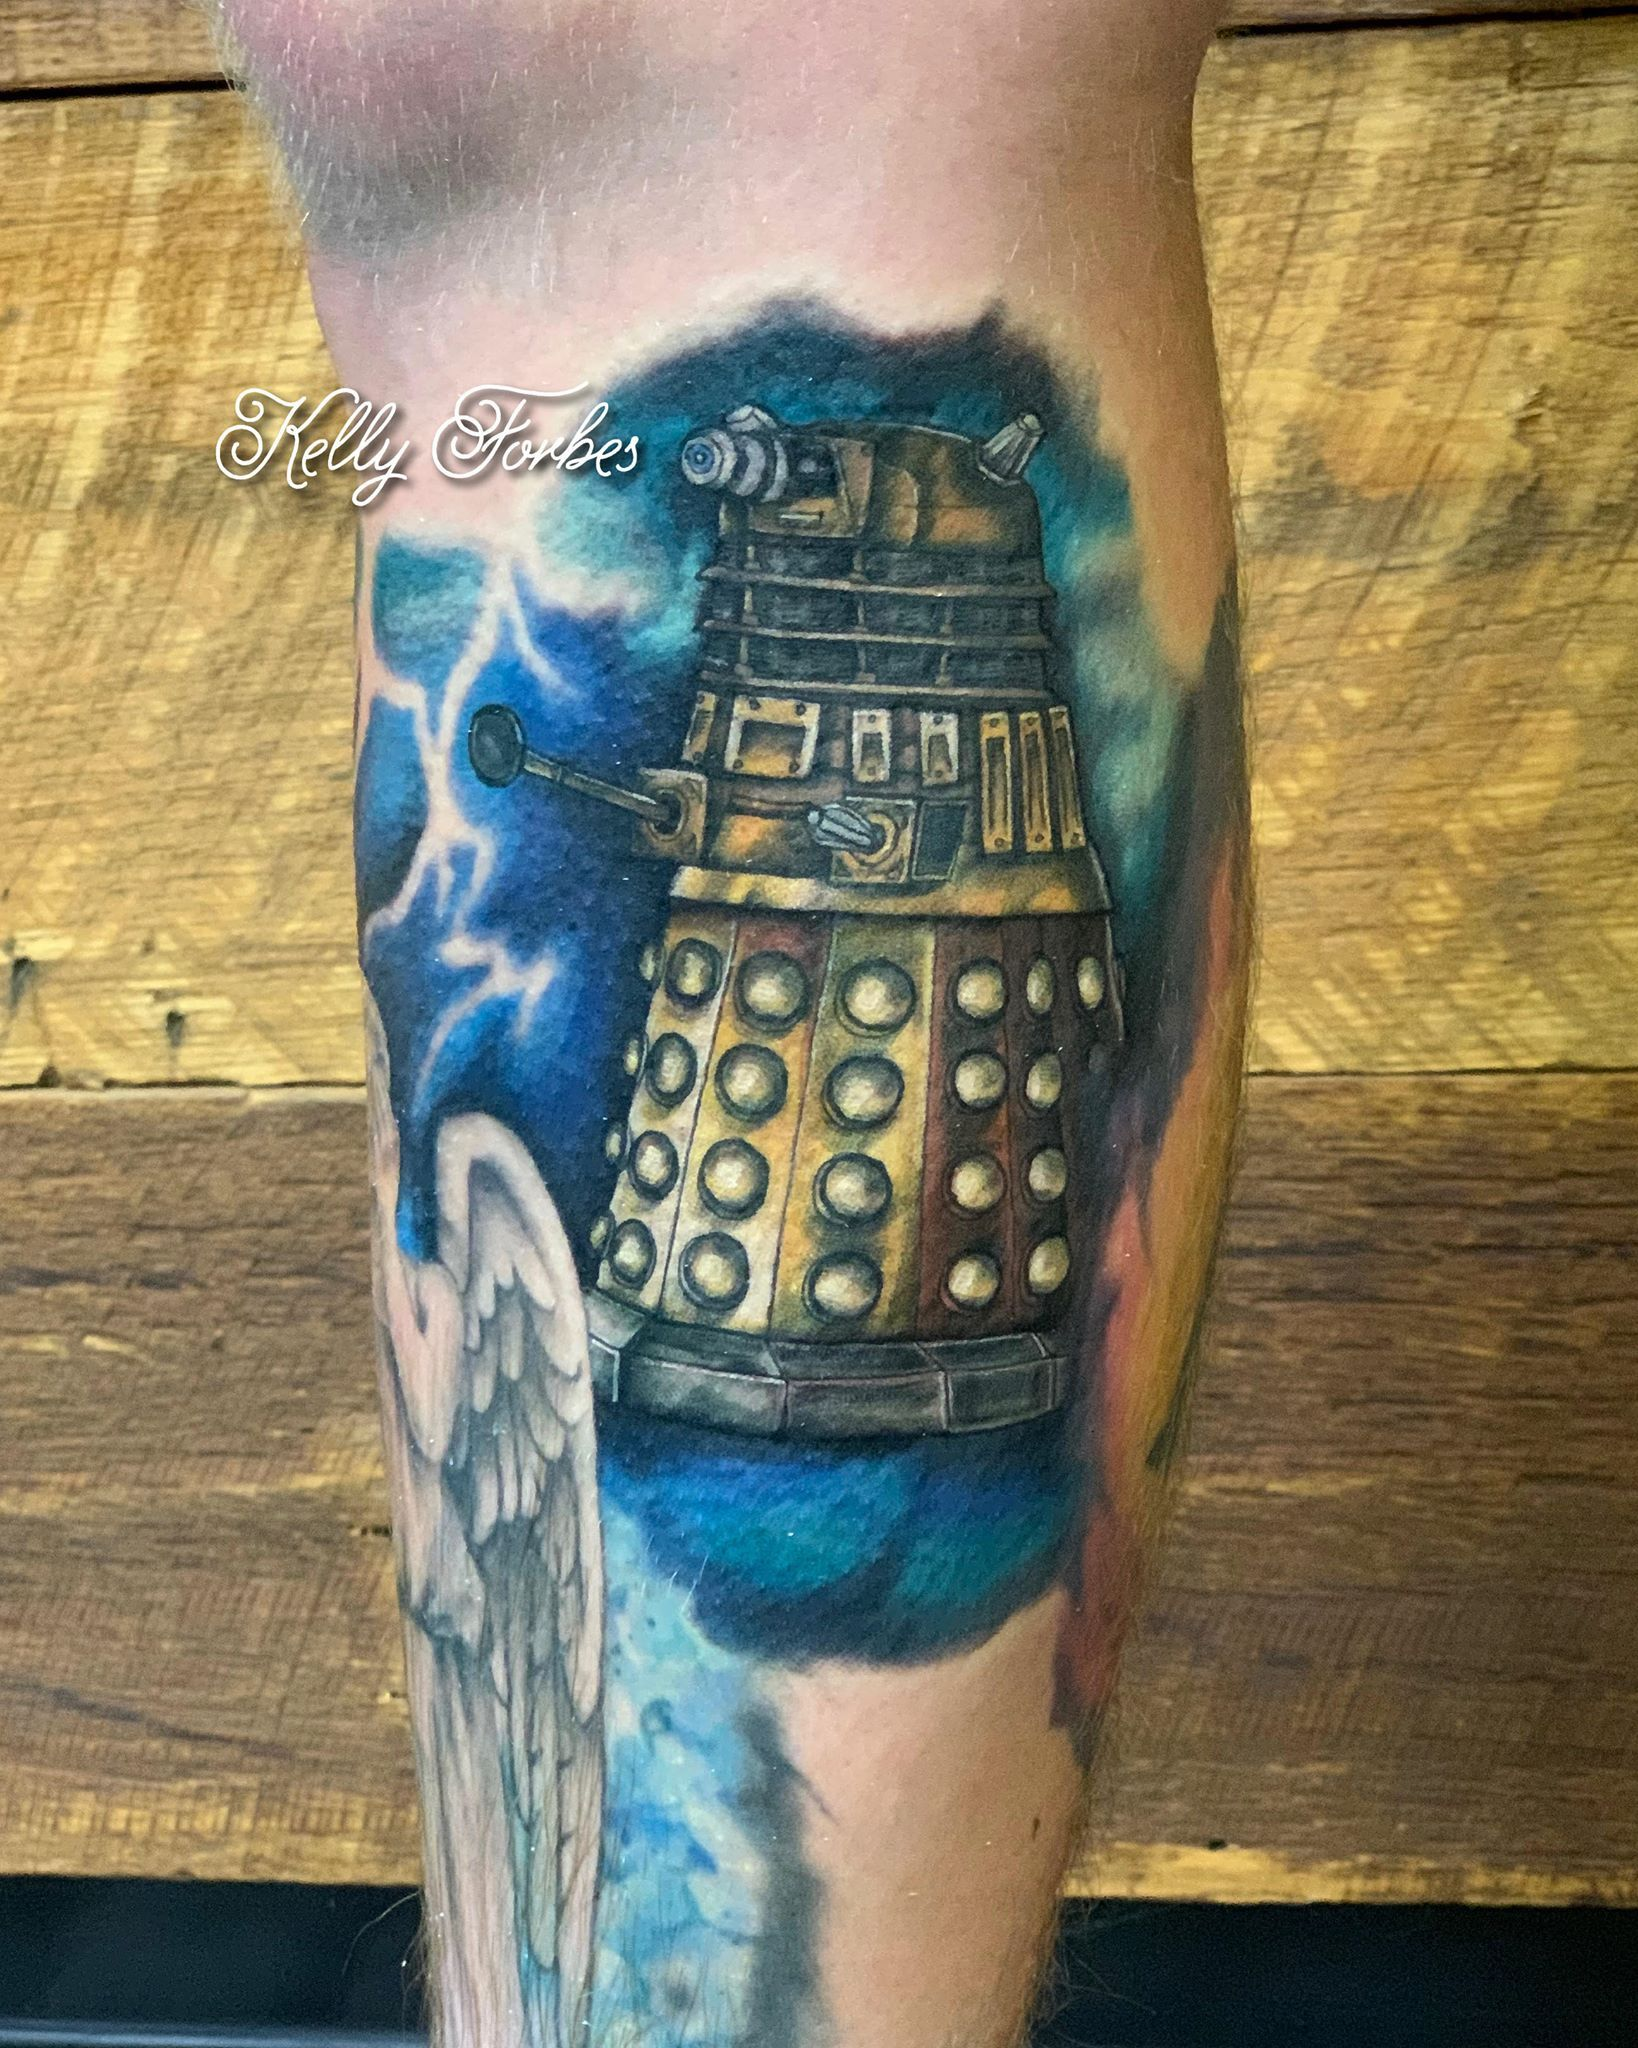 Done by our Apprentice: @kelly.forbes.tattoos  For bookings with Kelly, please email: kellyforbestattoo@gmail.com .  #doctorwho #tardis #whovian #thedoctor #tattoo #ink #colortattoo #inked #tattoos #art #inkedmag